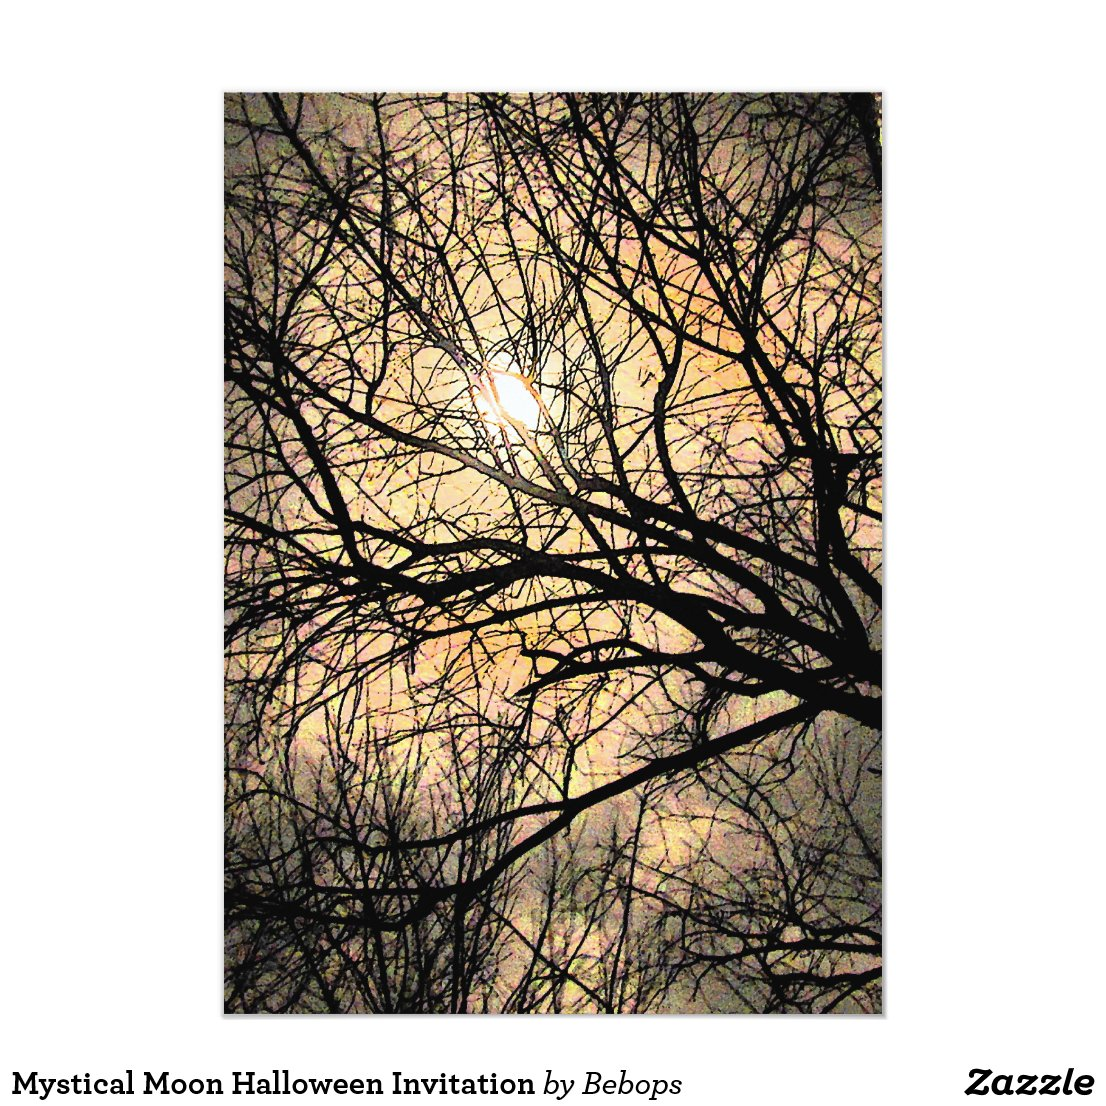 Mystical Moon Halloween Invitation